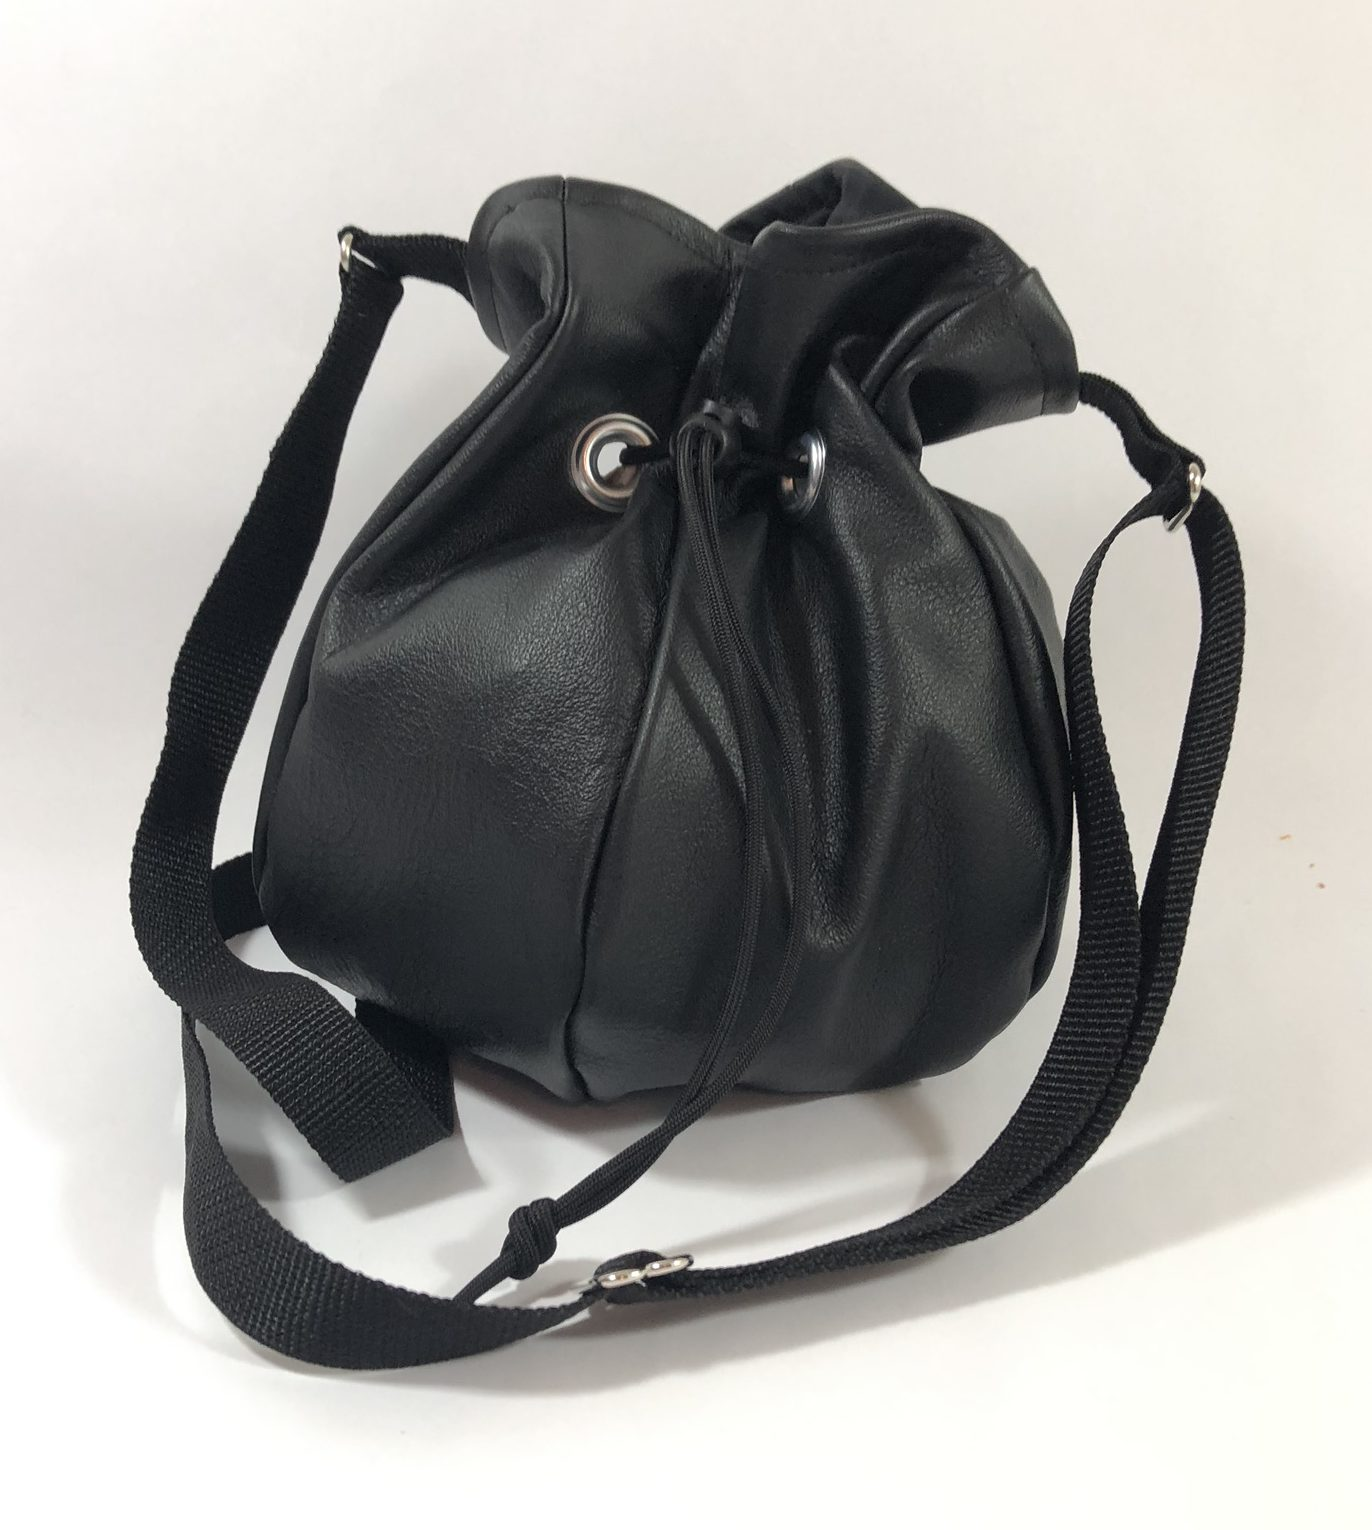 Drawstring crossbody handbag made from black leather.